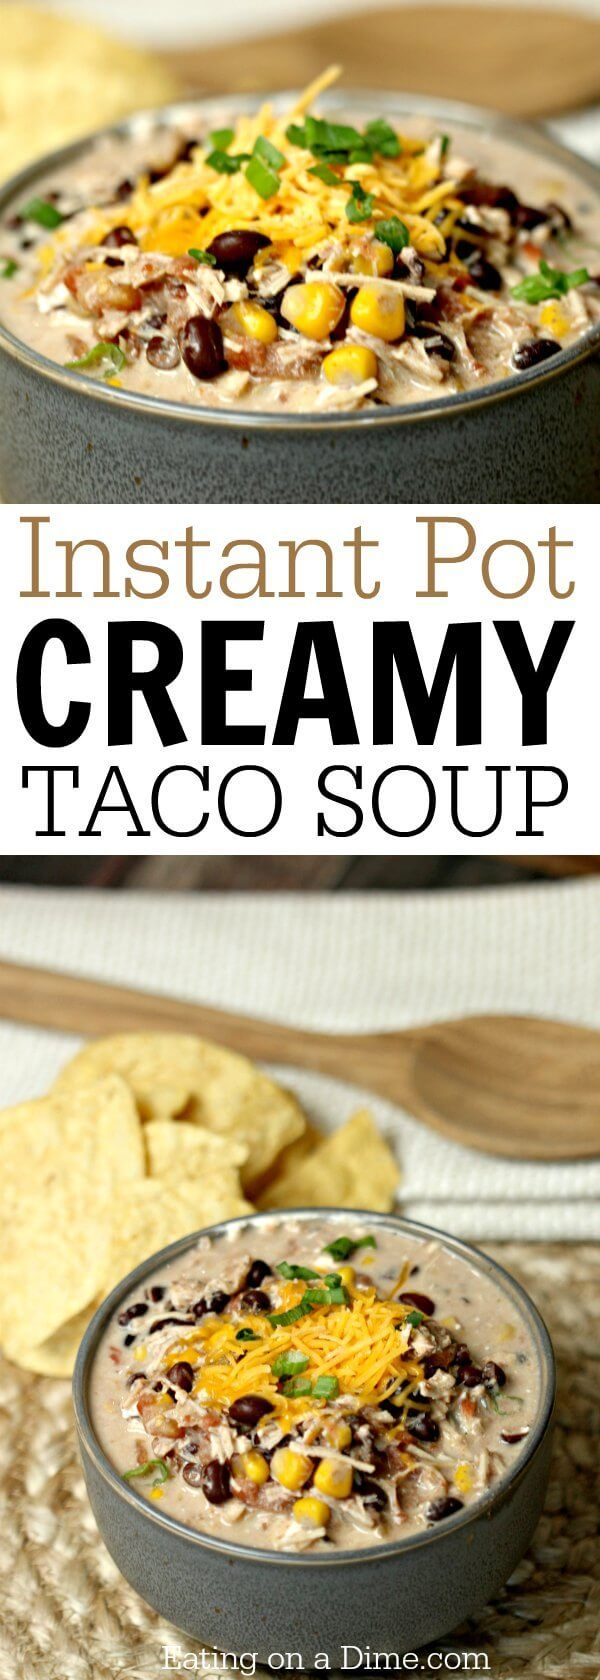 Try this Instant Pot Creamy Taco Soup Recipe! It's so quick and easy. Creamy Chicken Taco Soup Pressure Cooker Recipe is so savory and delicious! You will love Creamy Chicken Taco Soup Pressure Cooker Recipe!